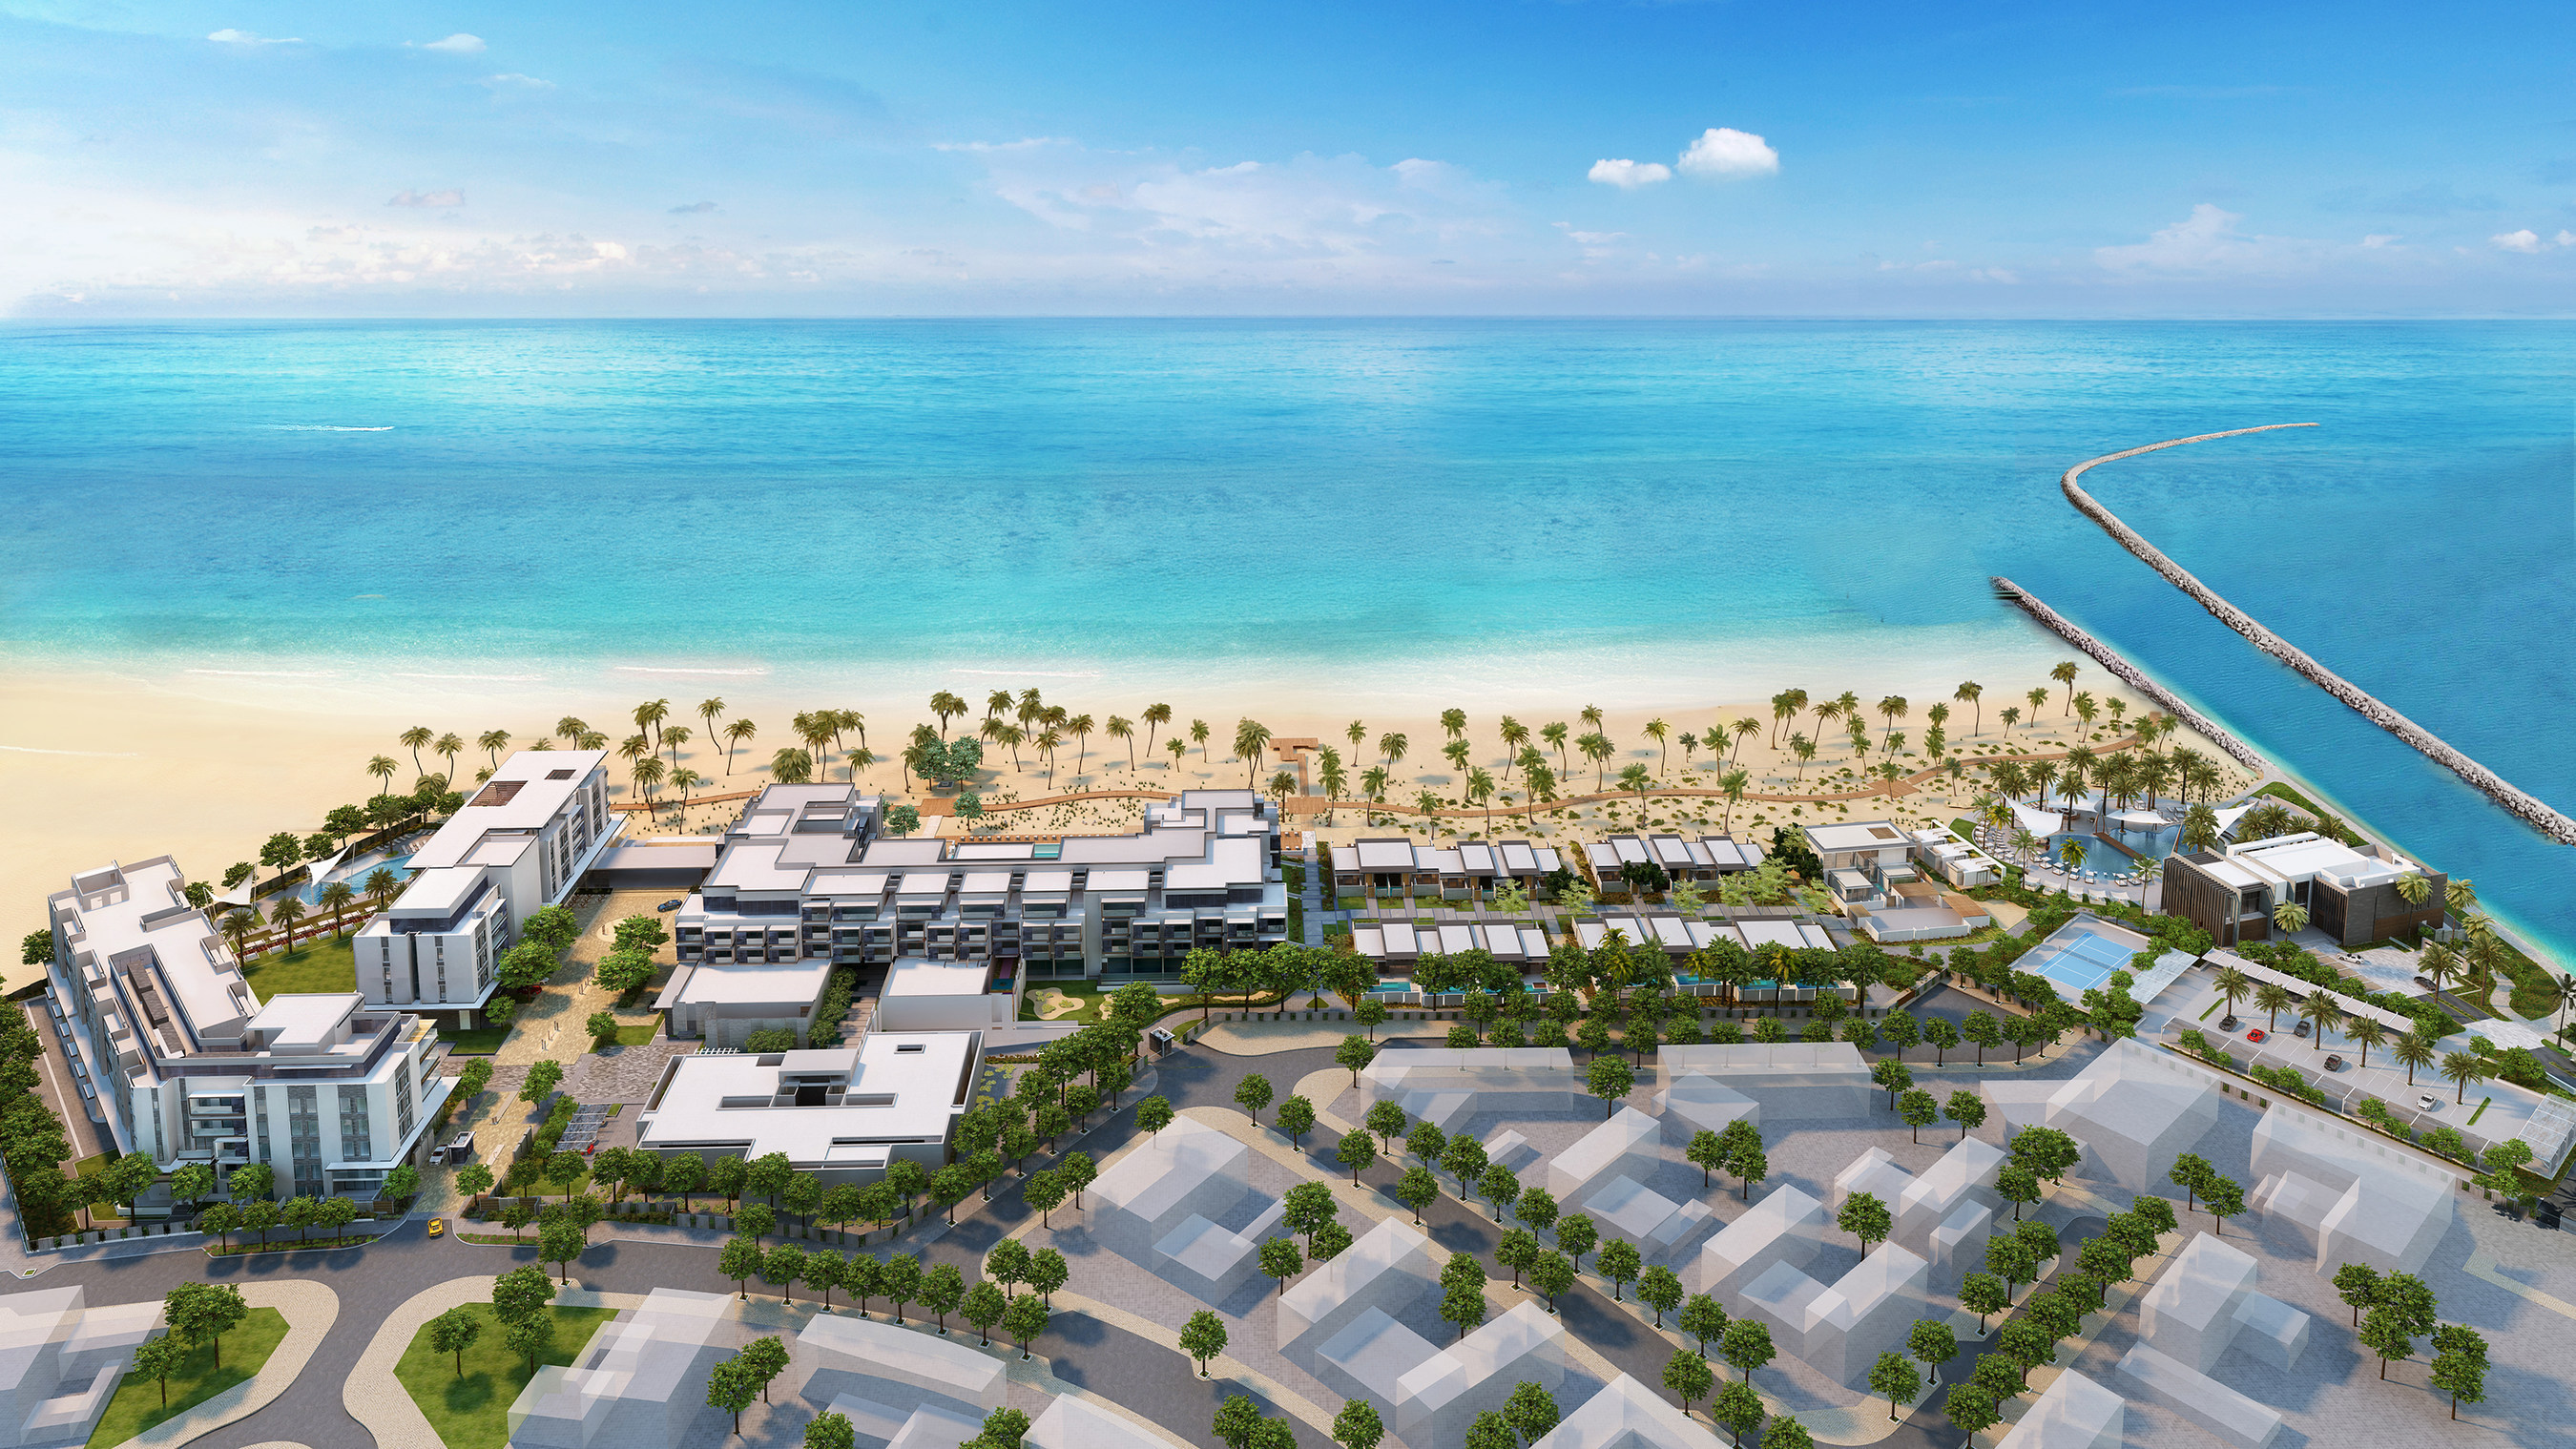 Nikki beach hotels resorts to add to its growing portfolio with the fall 2015 opening